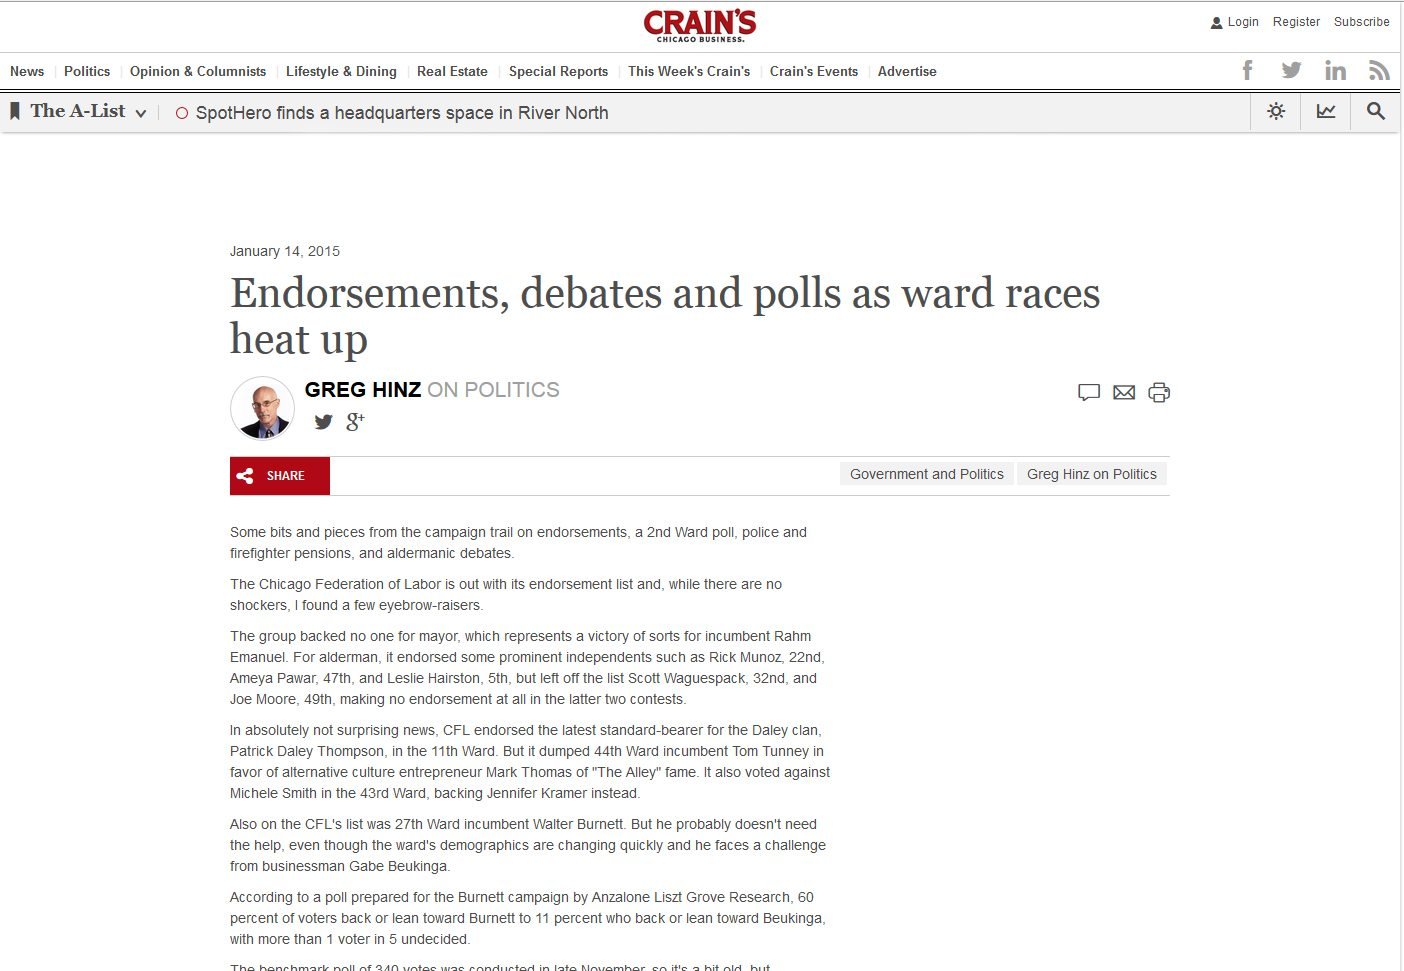 Crain's | Endorsements, debates and polls as ward races heat up